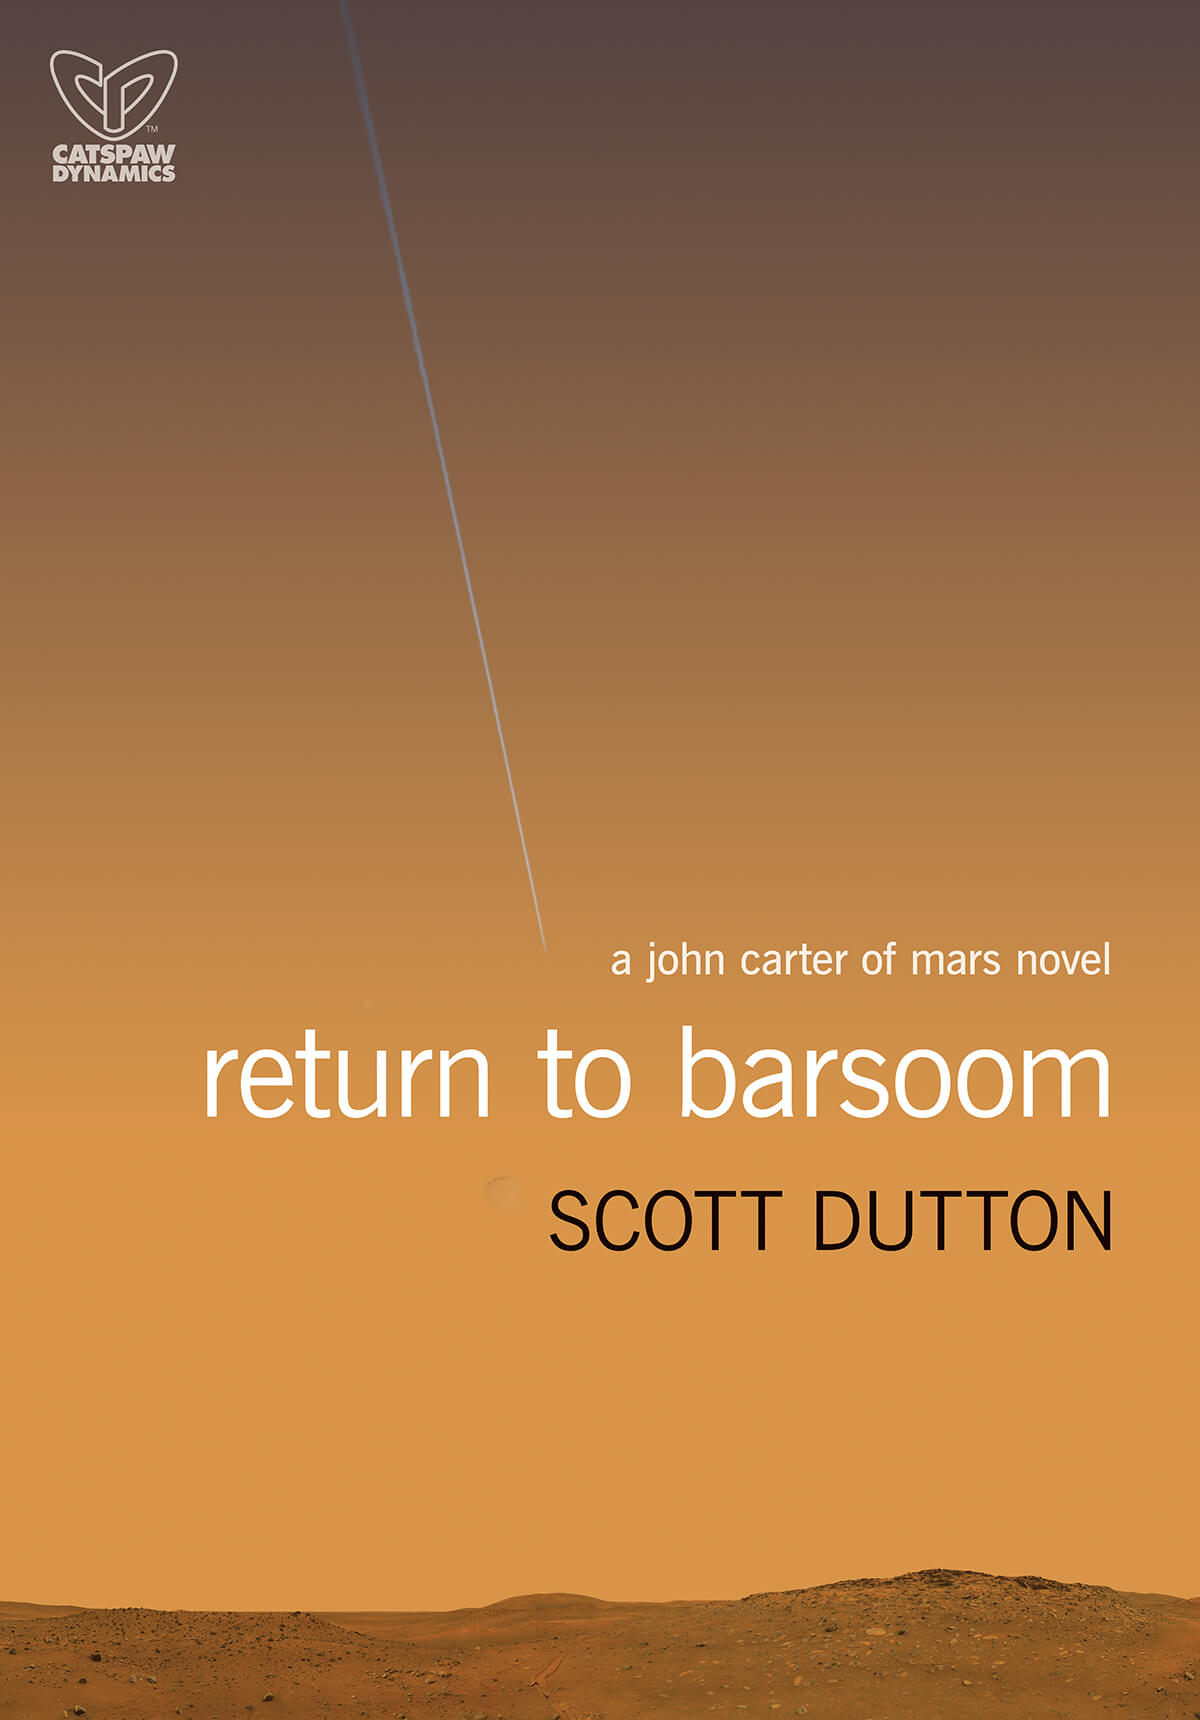 Return to Barsoom by Scott Dutton